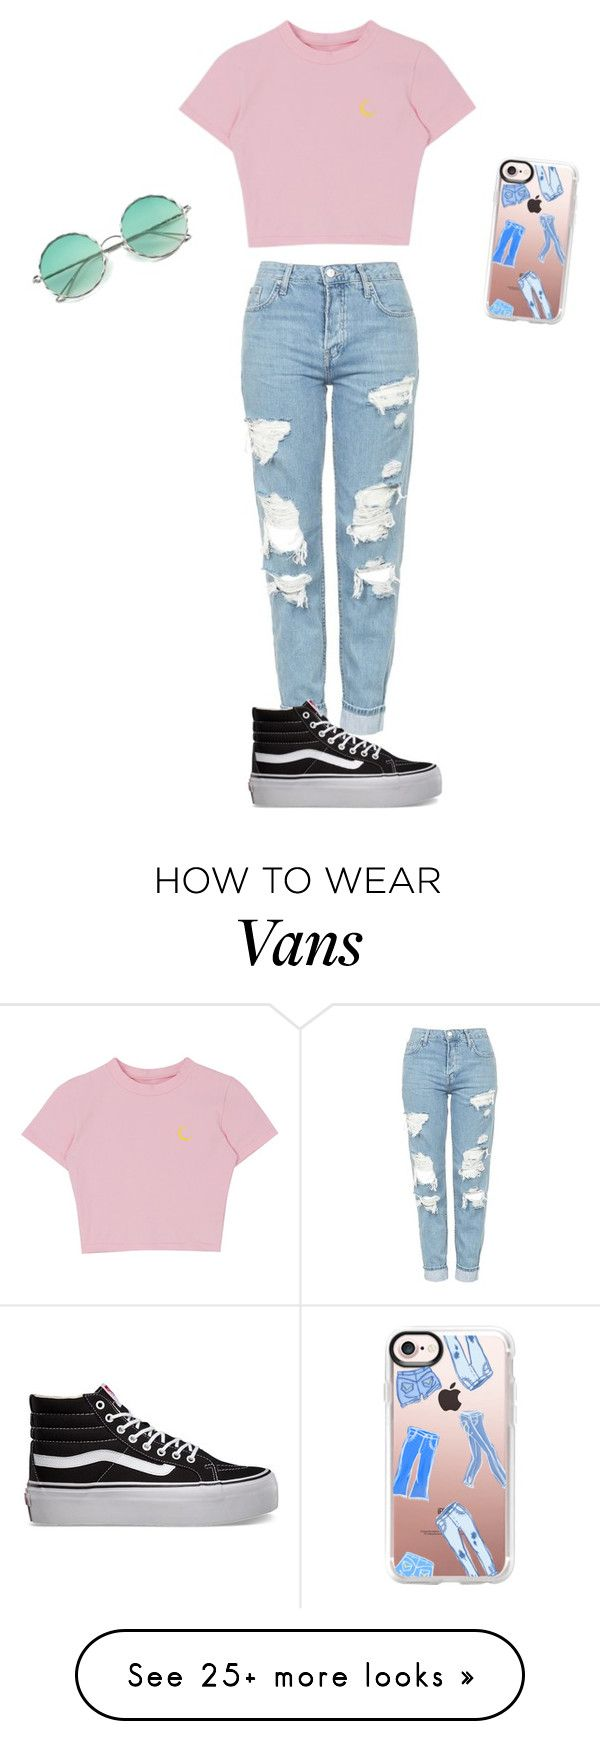 """Untitled #81"" by fashiongirl0116 on Polyvore featuring Topshop, Vans and Casetify"